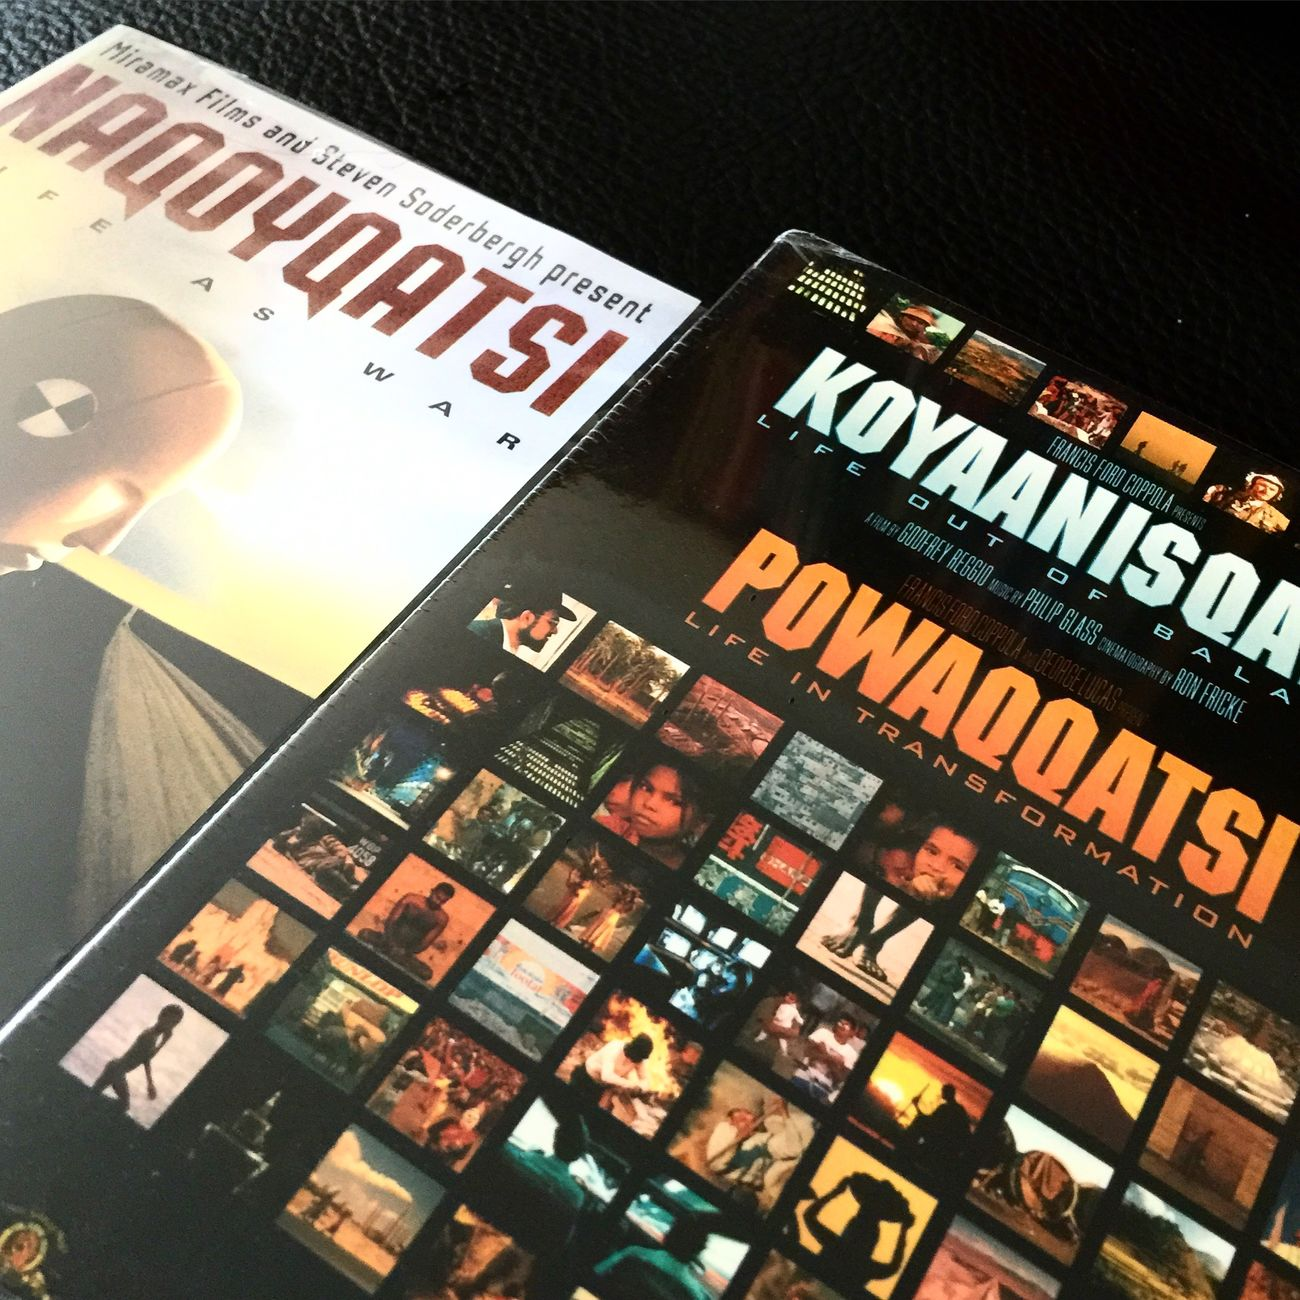 Home alone, movienight. Koyaanisqatsi Powaqqatsi Naqoyqatsi Movienight